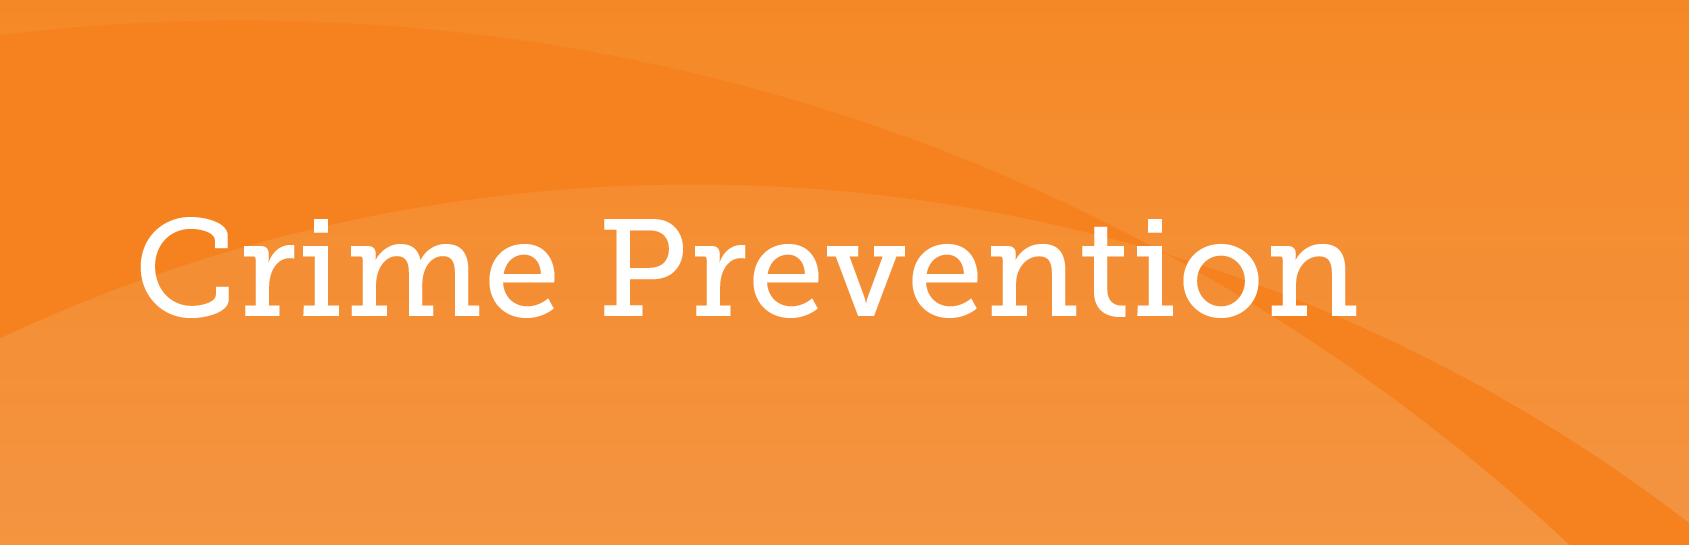 Report Buttons_Web_002_Crime Prevention_Orange.png